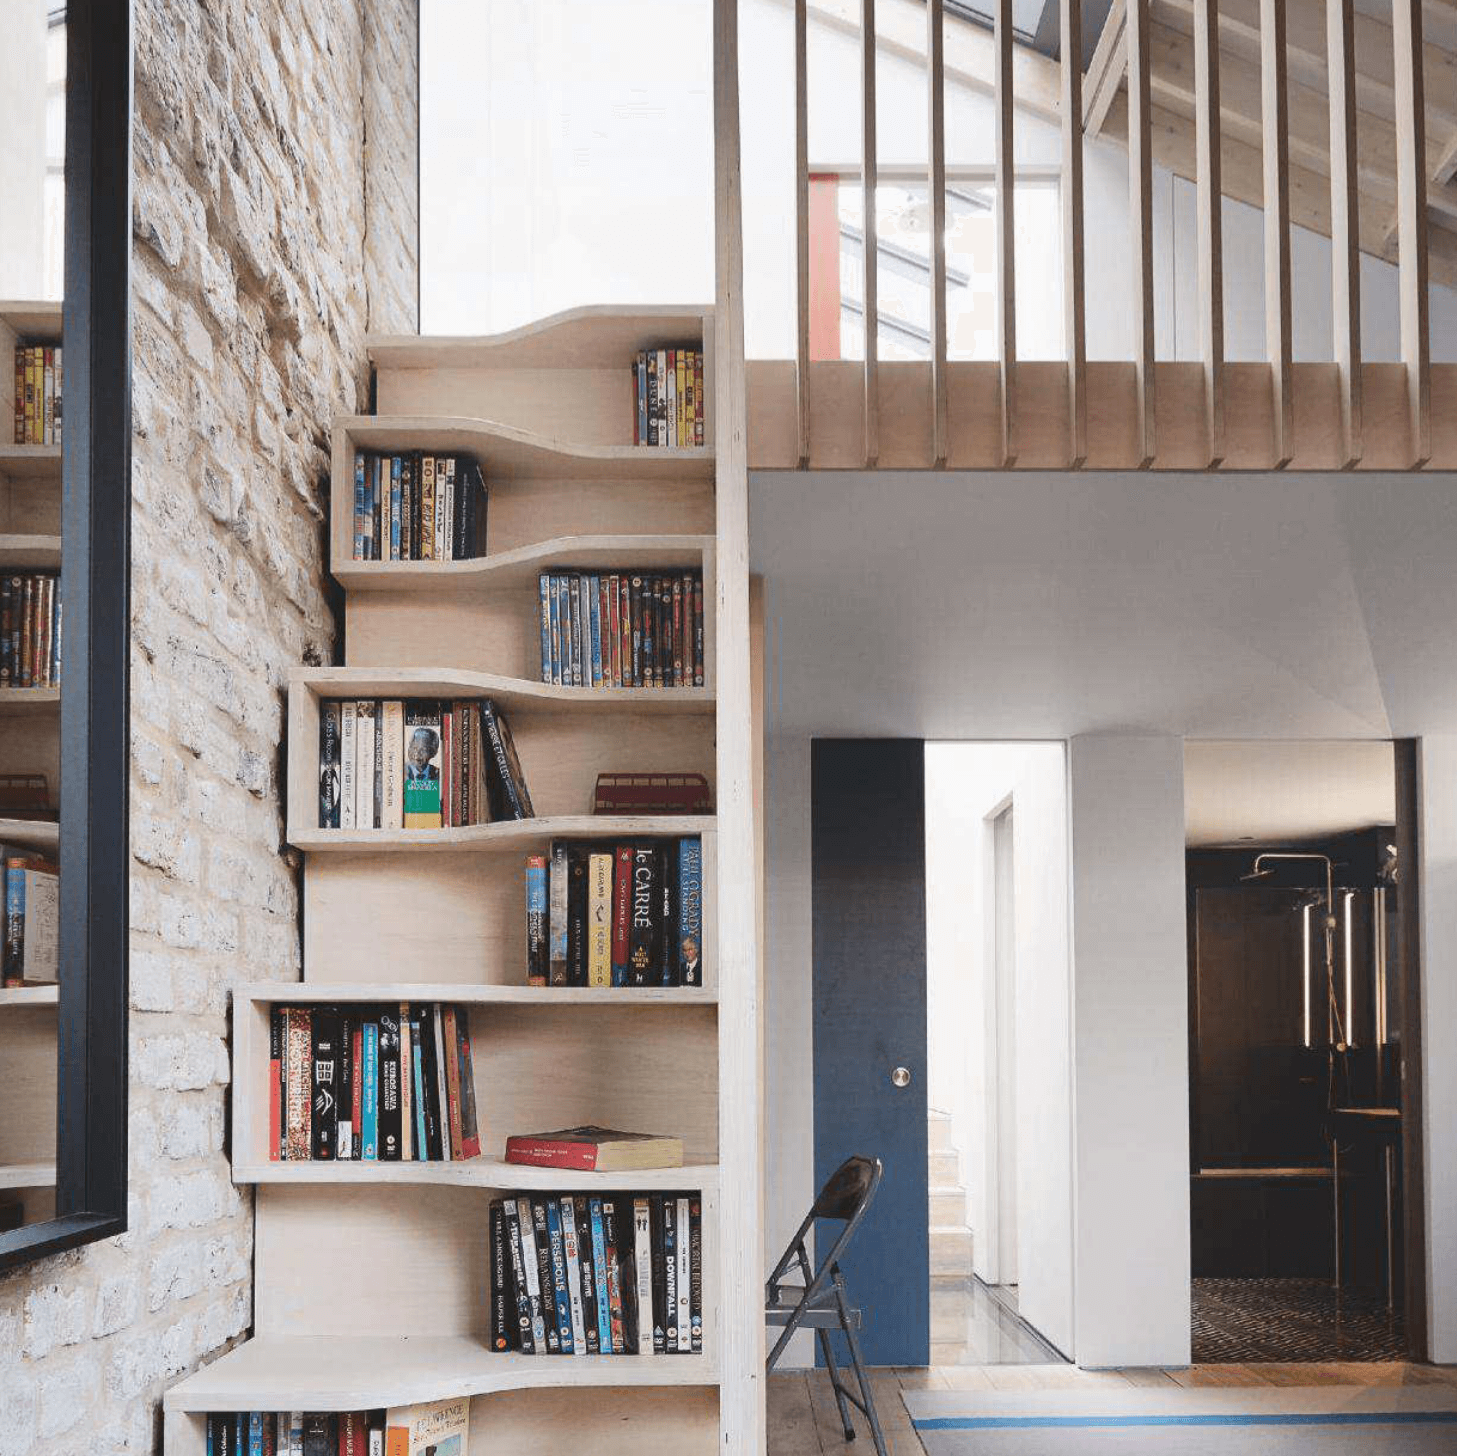 07_FY_WH_NU_BL_LE_Bookcase Stair_04_18.png